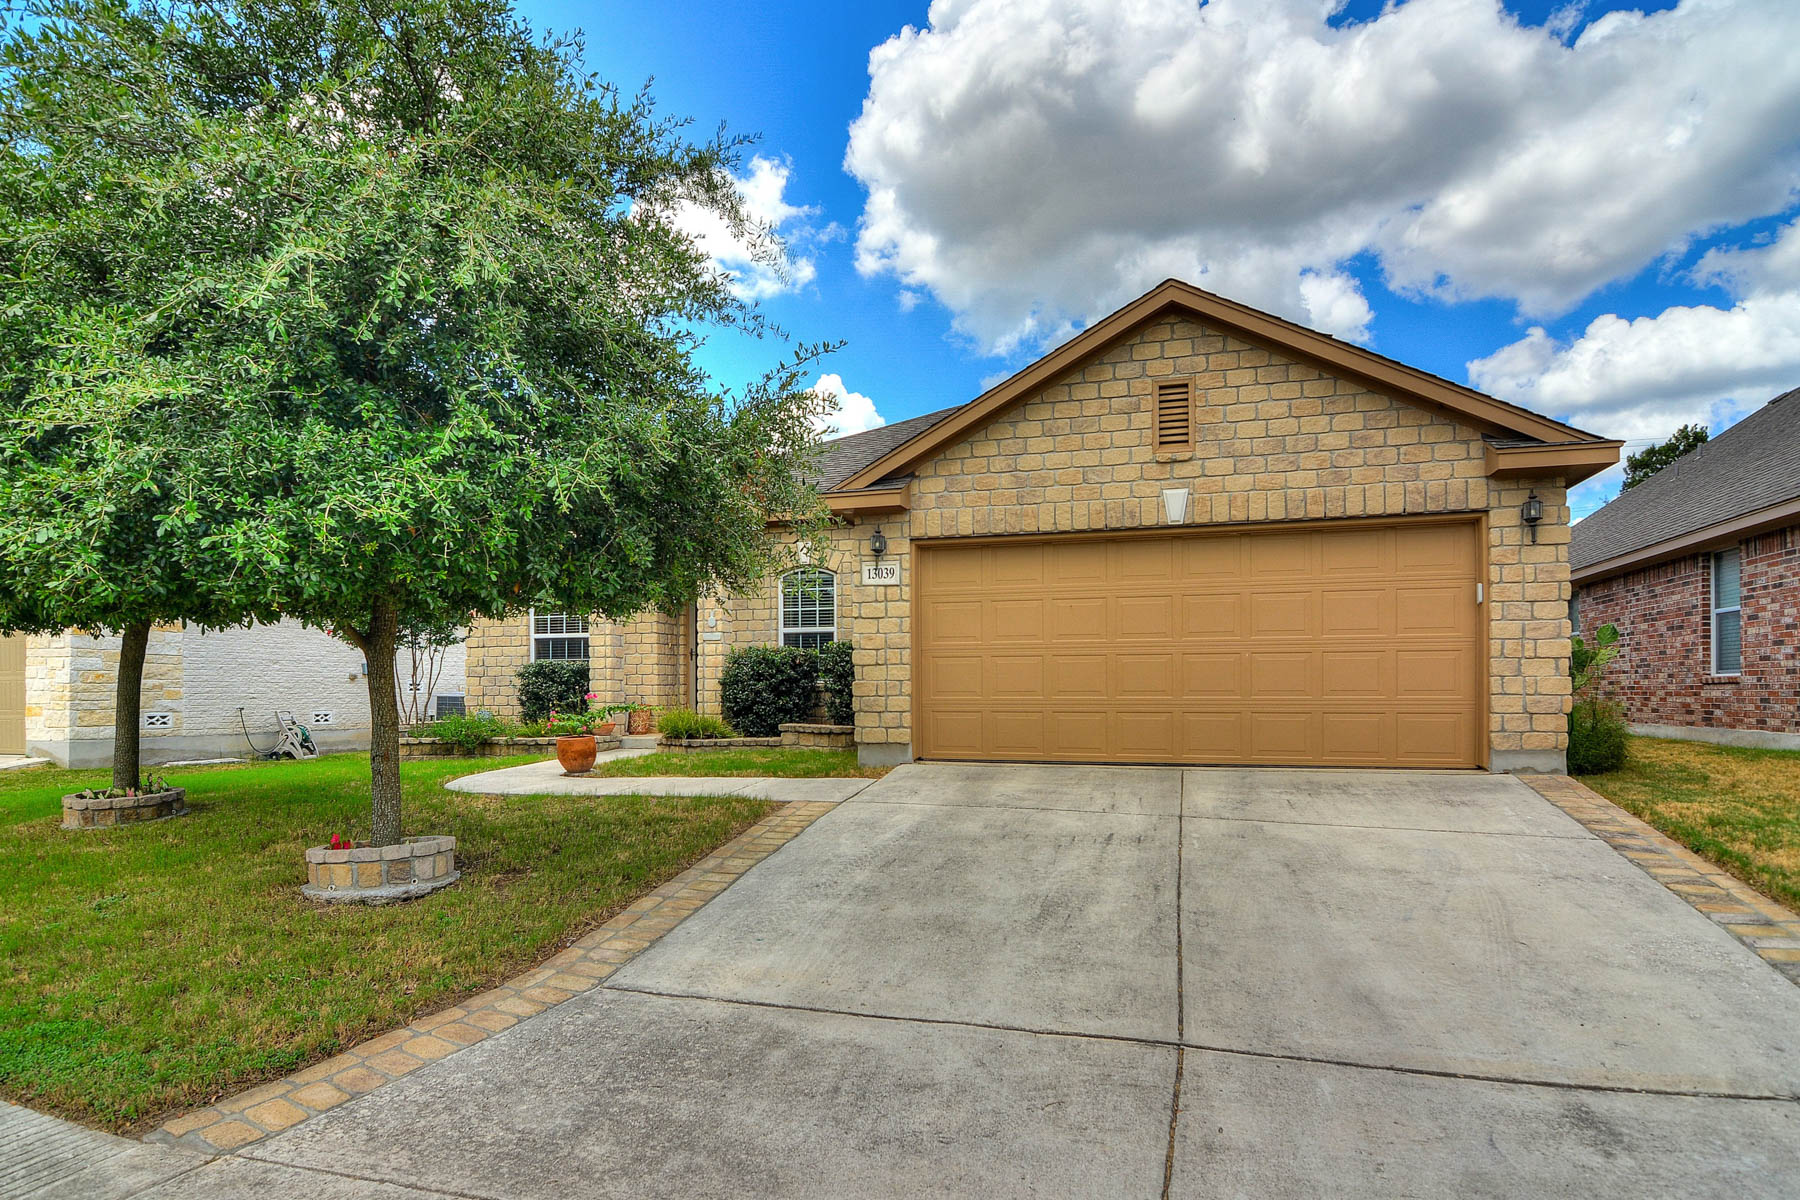 Single Family Home for Sale at Adorable 1-Story Home in Bavarian Forest 13039 Moselle Forest Helotes, Texas 78023 United States